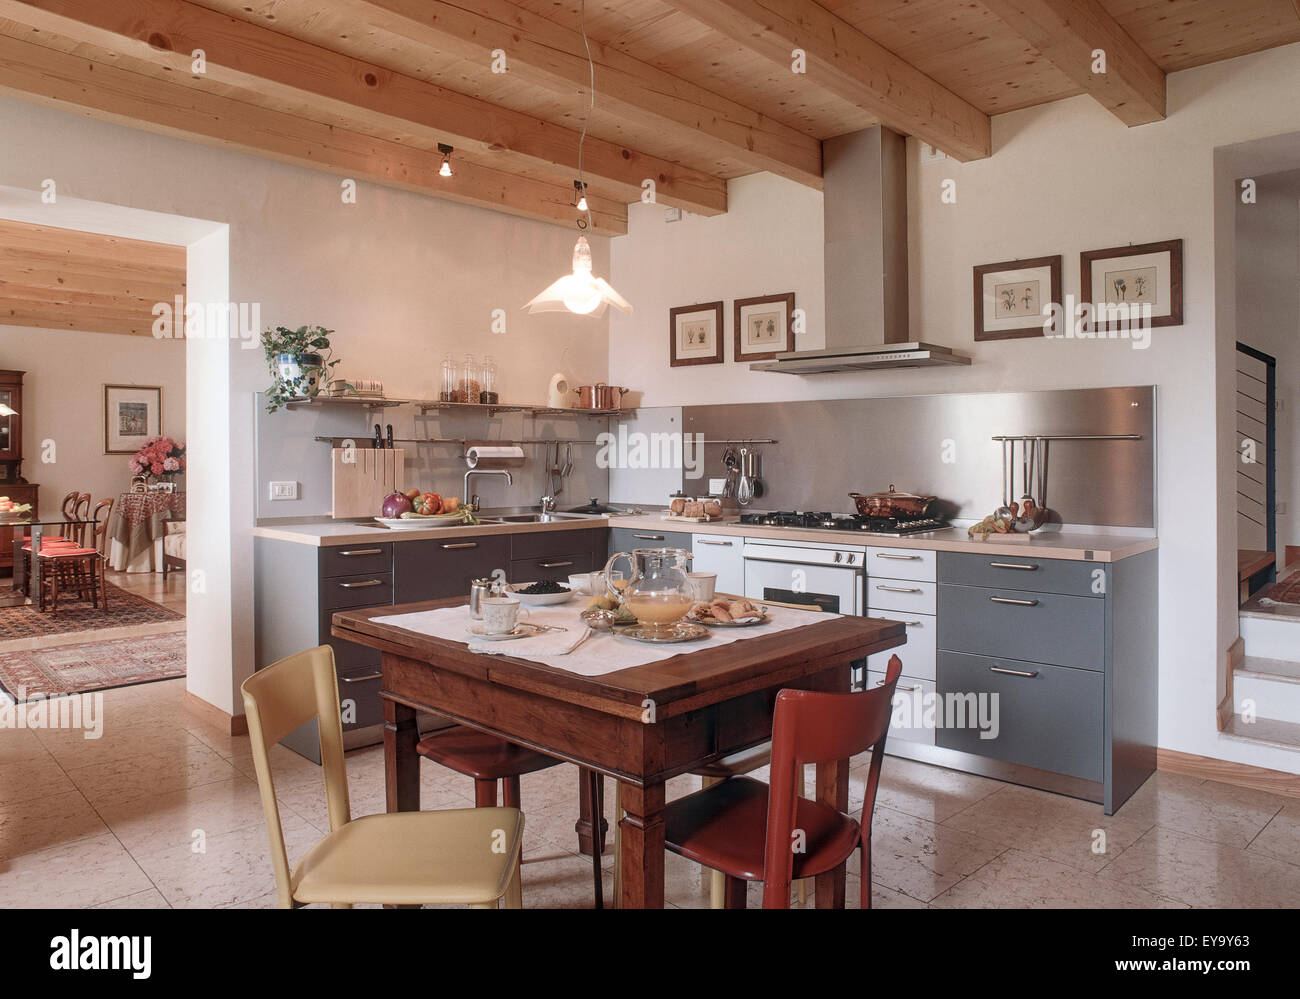 foreground of table laid in the rustic kitchen with marble floor and wood ceiling Stock Photo